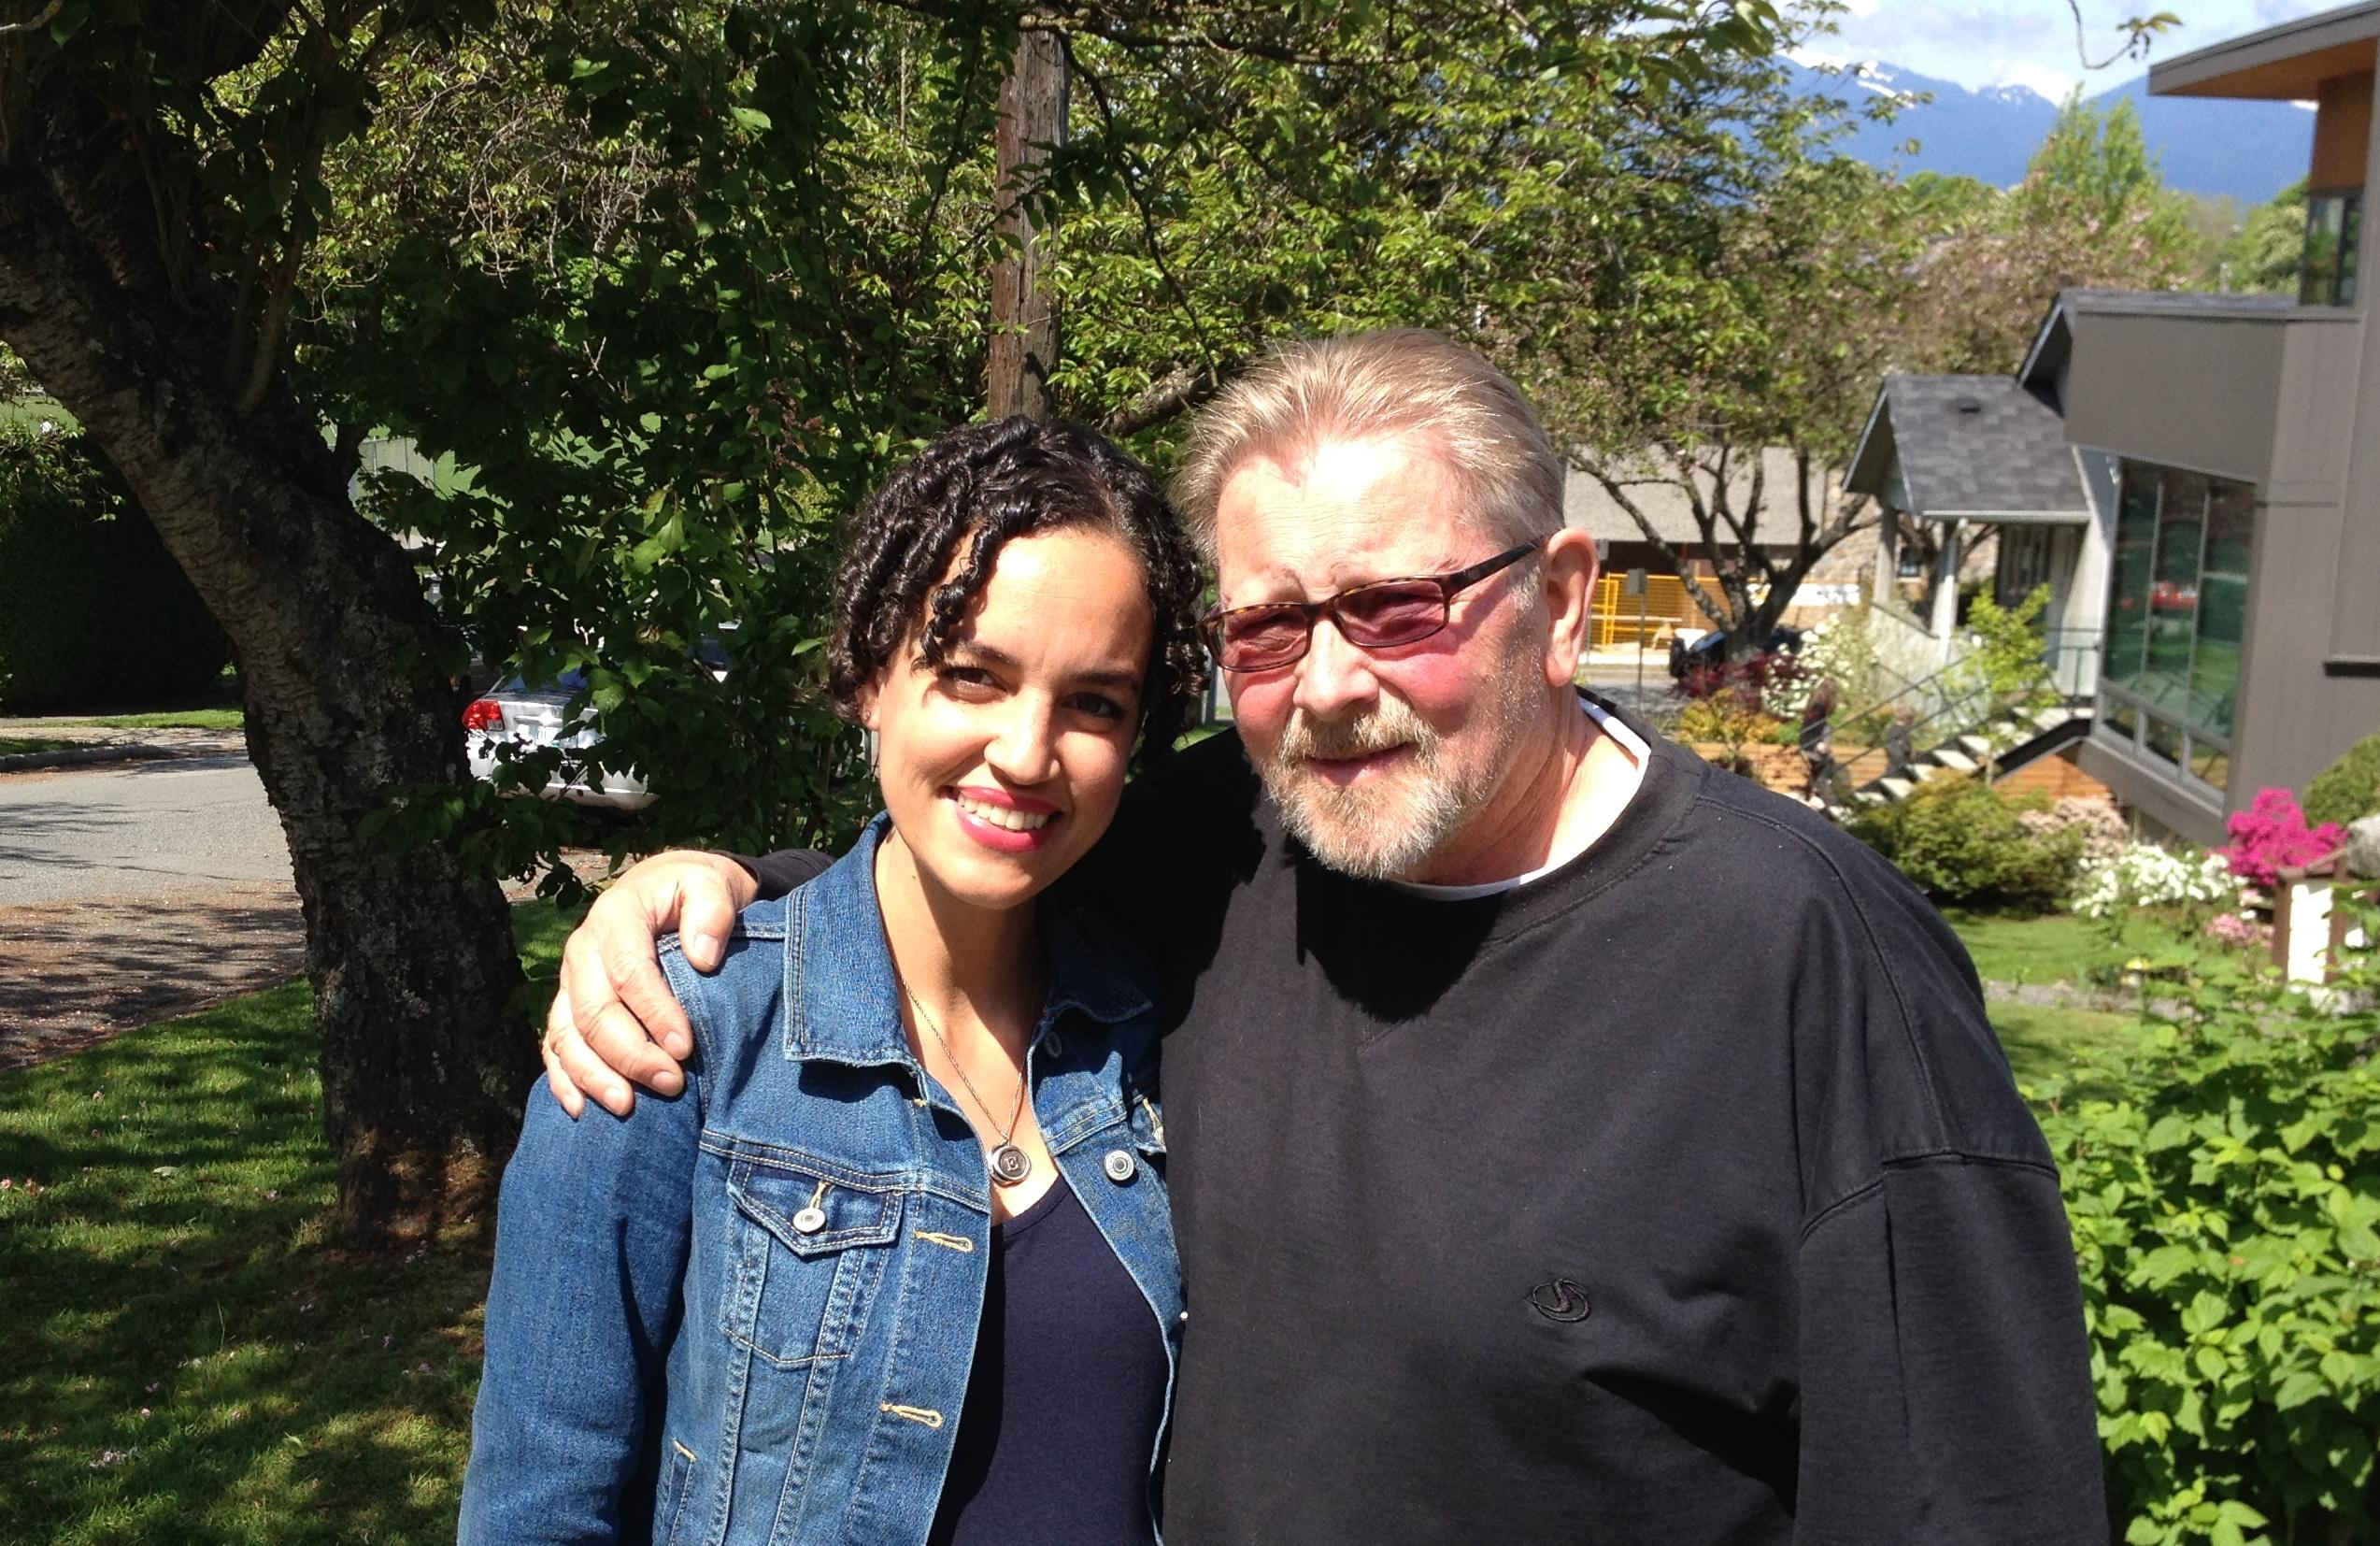 Bianca and her father.